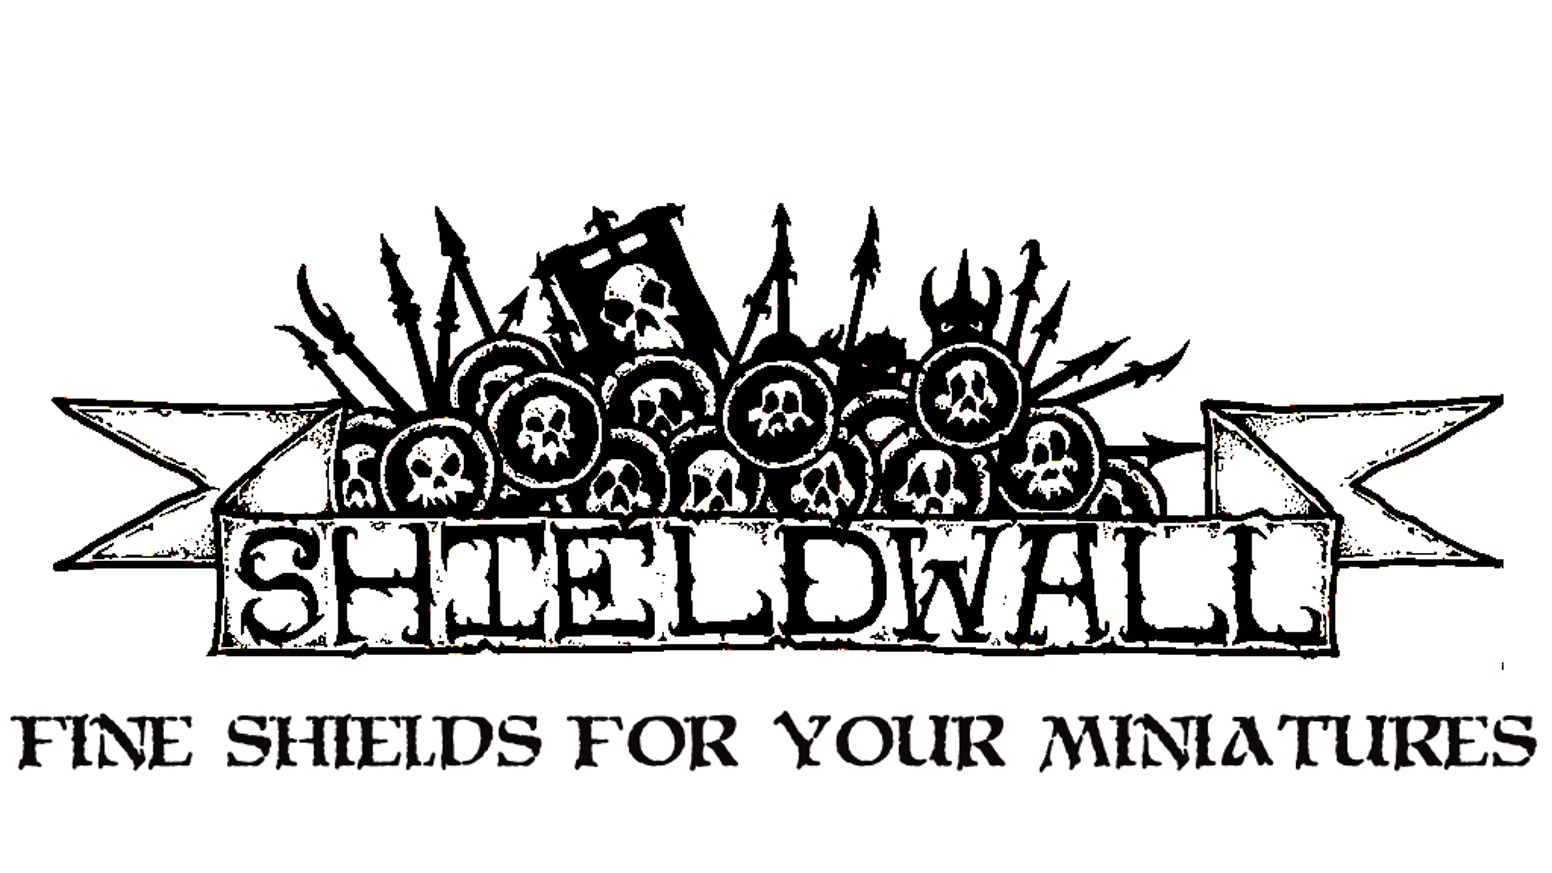 Shieldwall - fine shields for your minatures